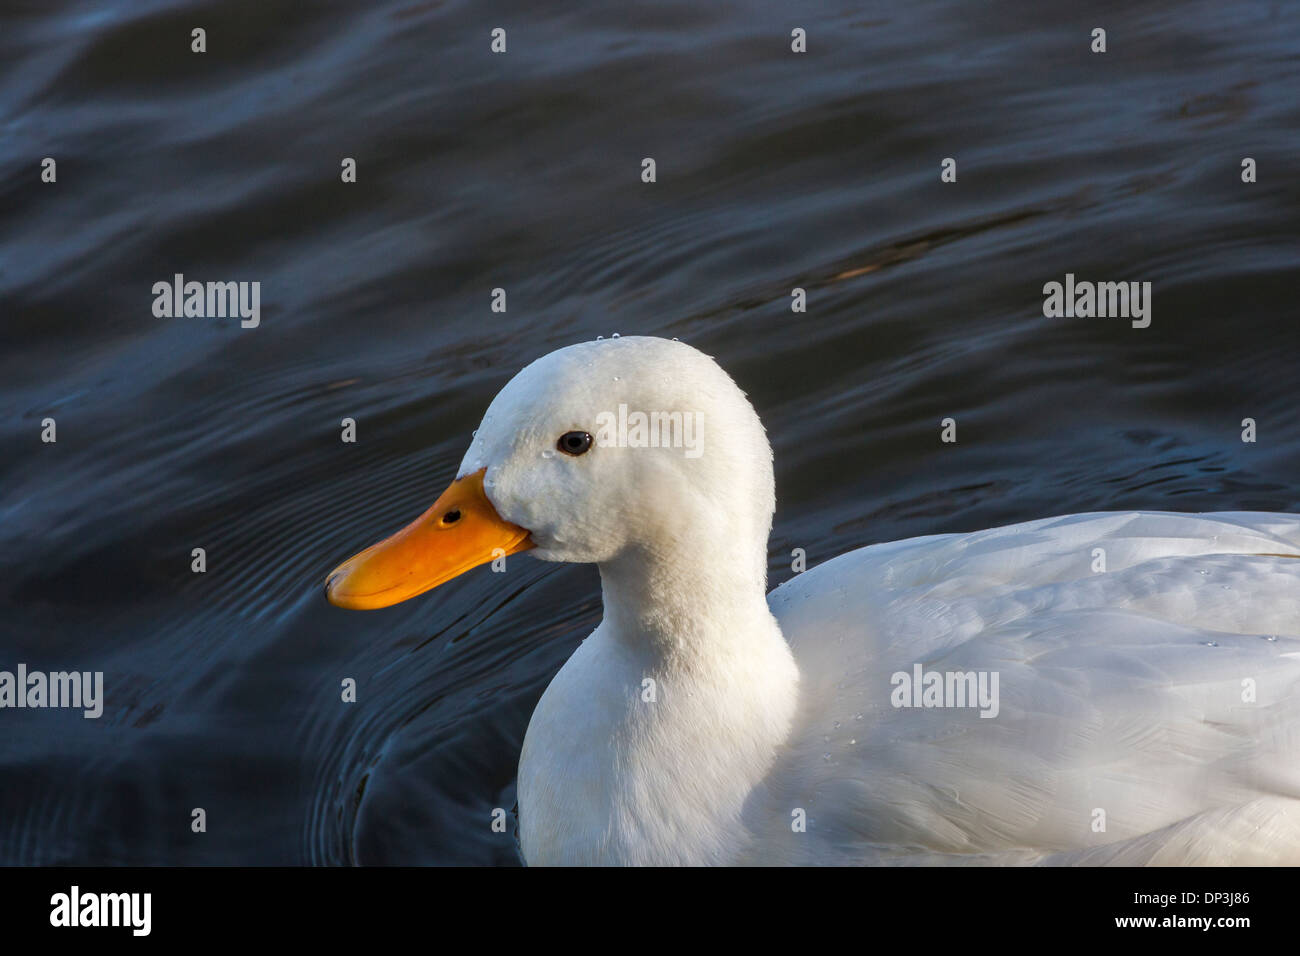 White Duck on River, close-up - Stock Image